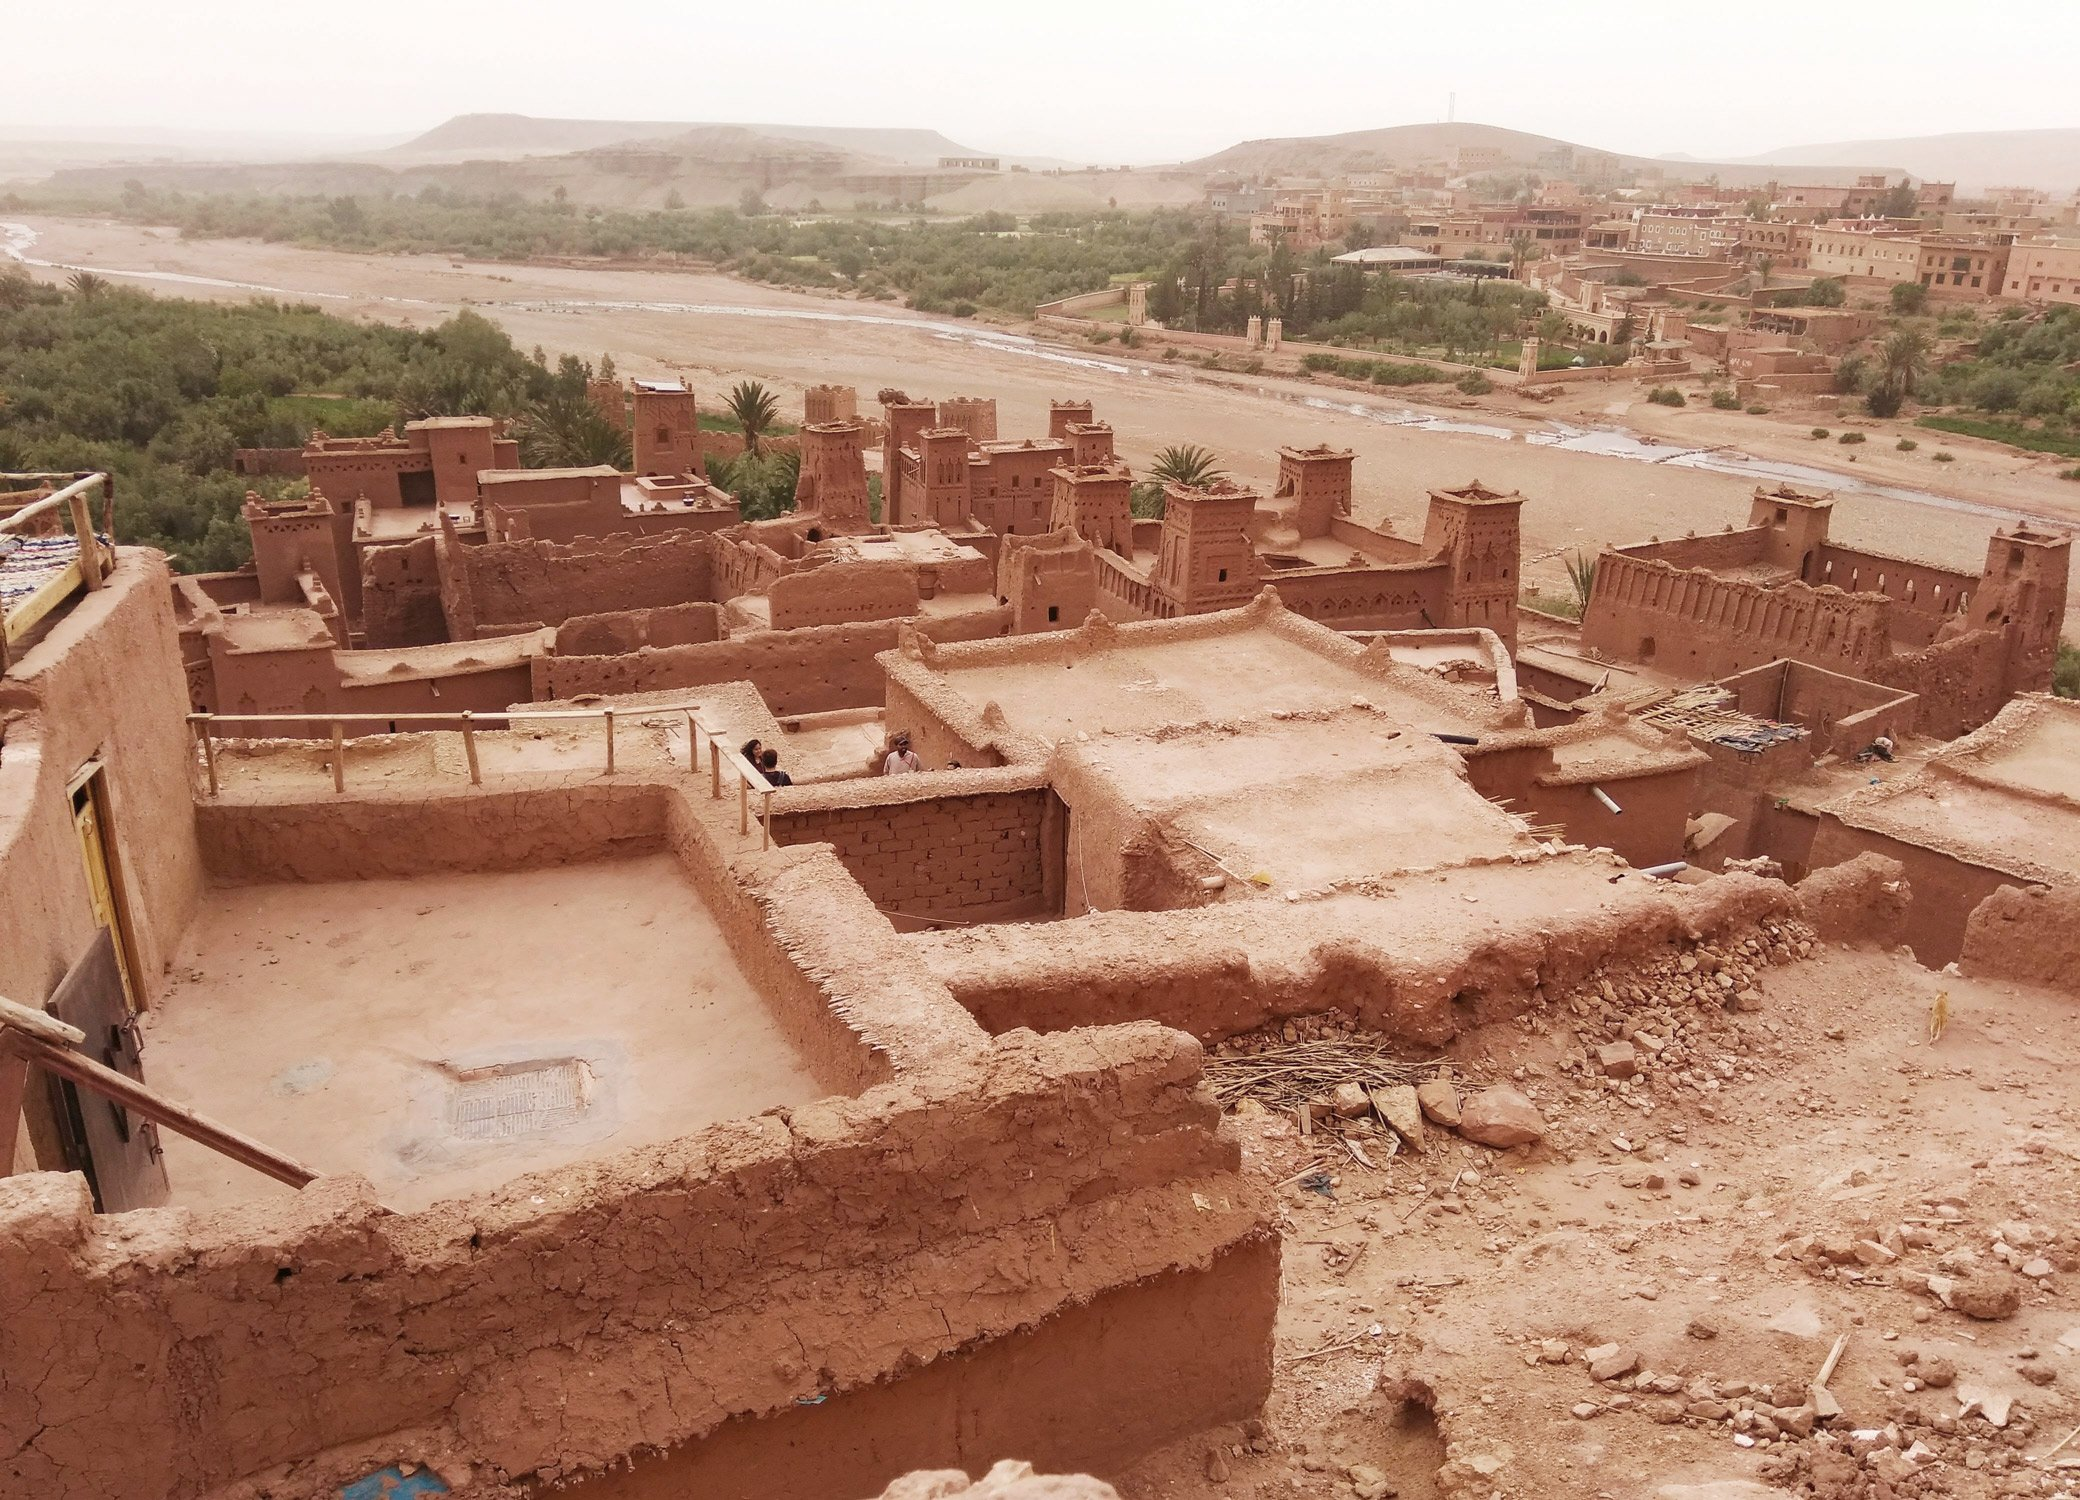 the ksar of Ait Benhaddou fortified village in Morocco